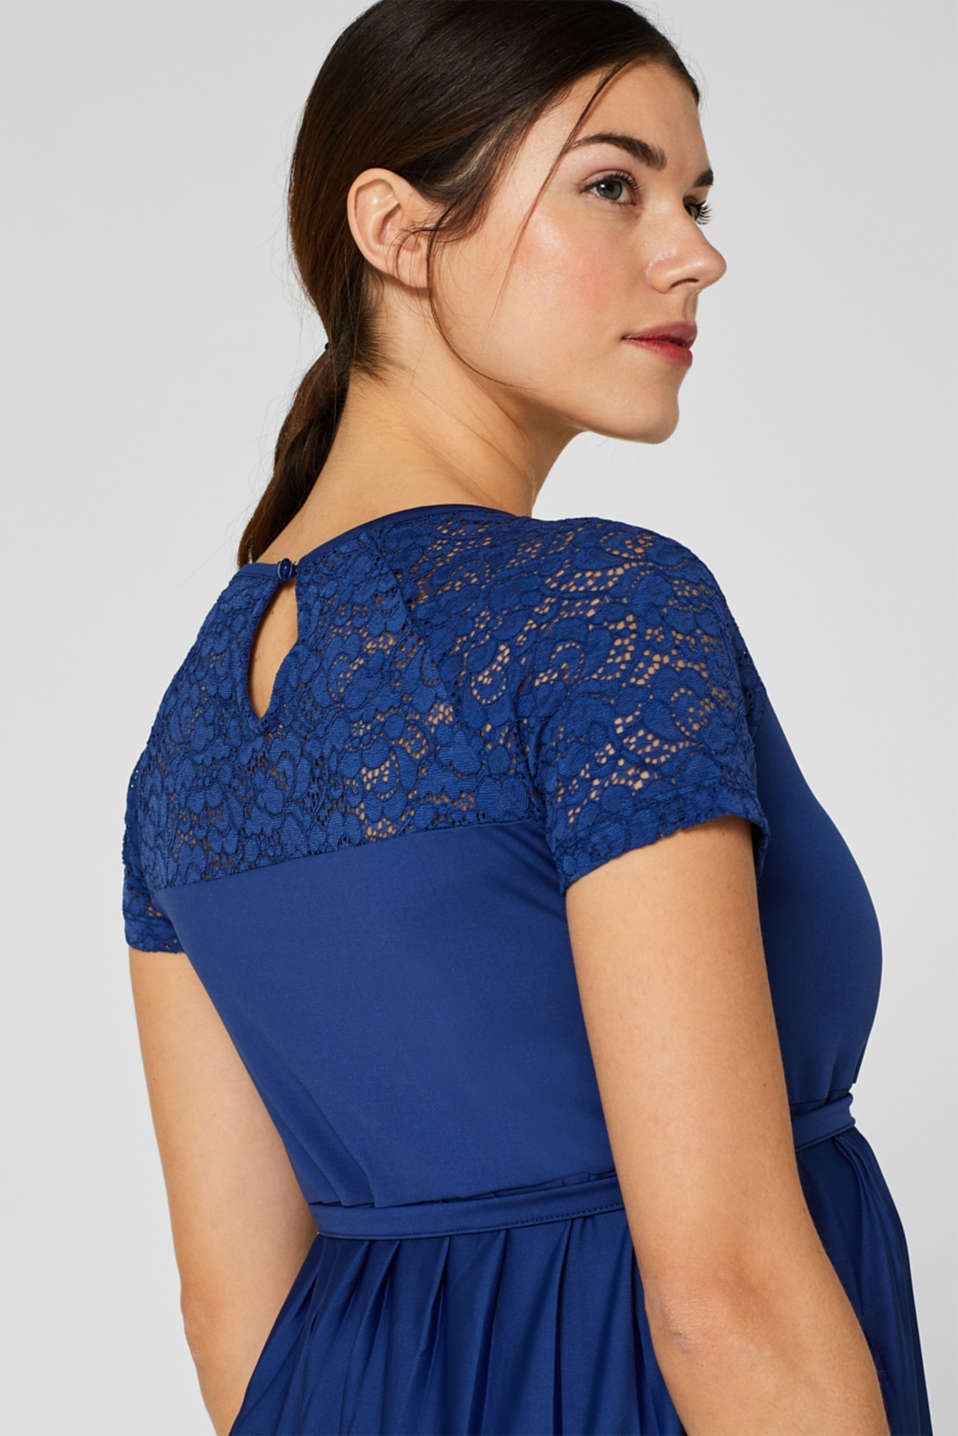 Lace-trimmed dress with a pleated skirt, LCDARK BLUE, detail image number 5